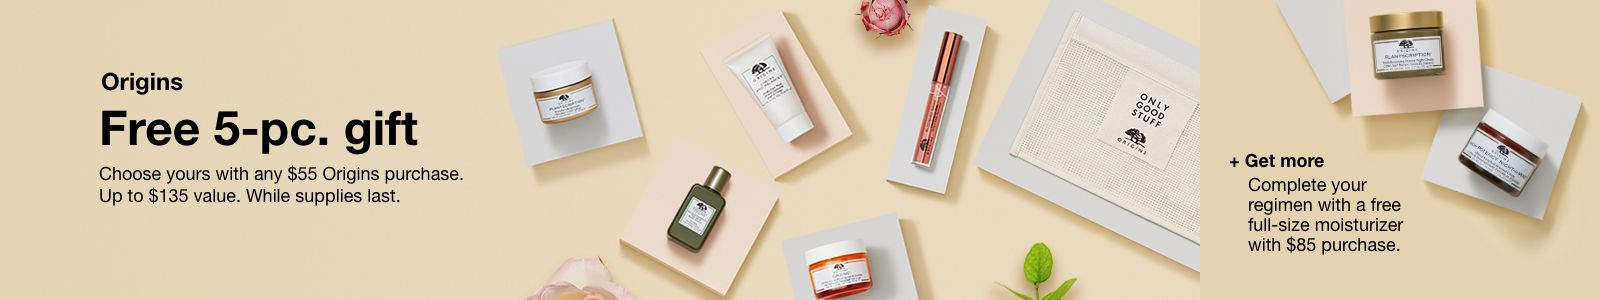 Origins Free 5-pc, gift, Shop Now, + Get more